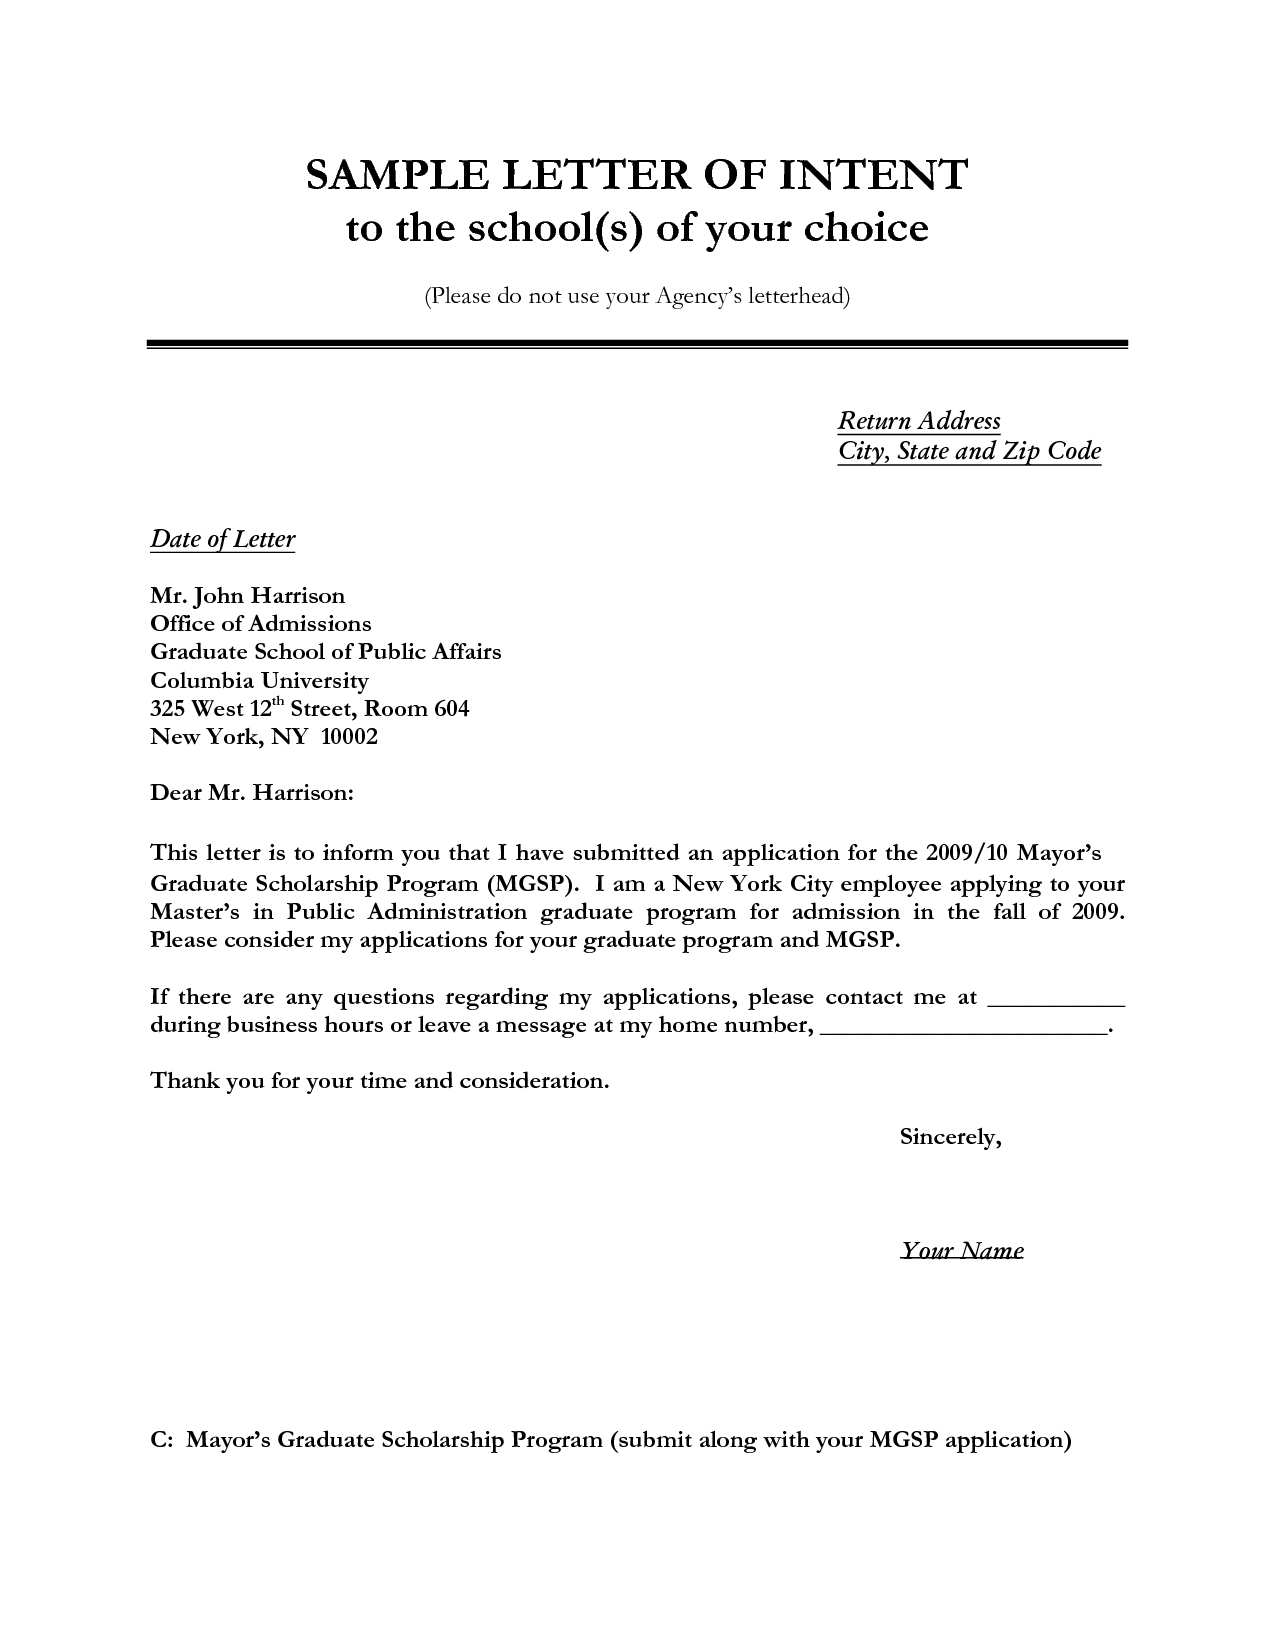 Letter to Creditors Template - Letter Of Intent Sample